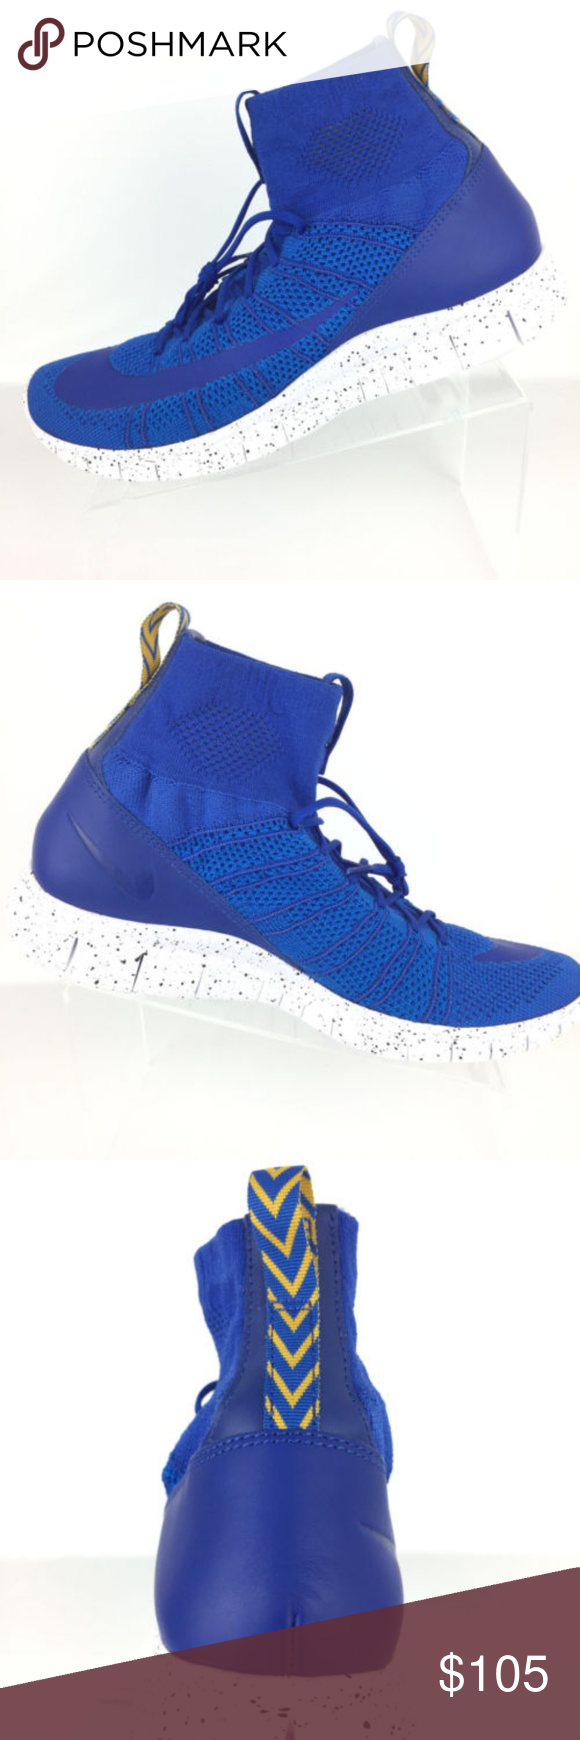 the best attitude 4e504 1c0b7 Nike Free Flyknit Mercurial Superfly Shoes Nike Free Flyknit Mercurial  Superfly Shoes Men s size 11.5 Medium width Game Royal Blue Upper with  white speckled ...